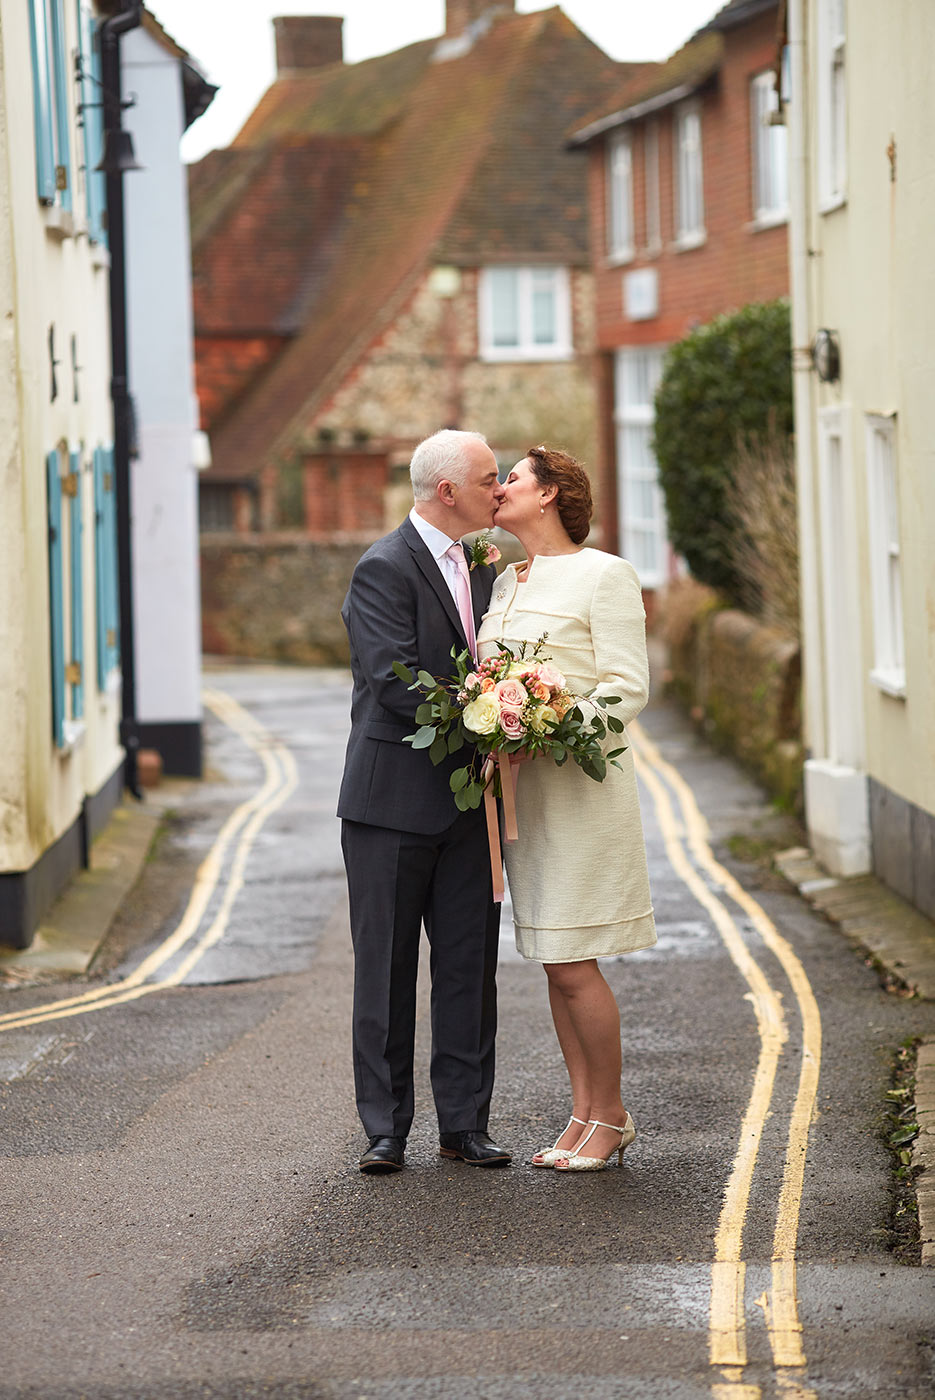 Wedding Photography at the Millstream Hotel, Bosham. Charlie and Imogen